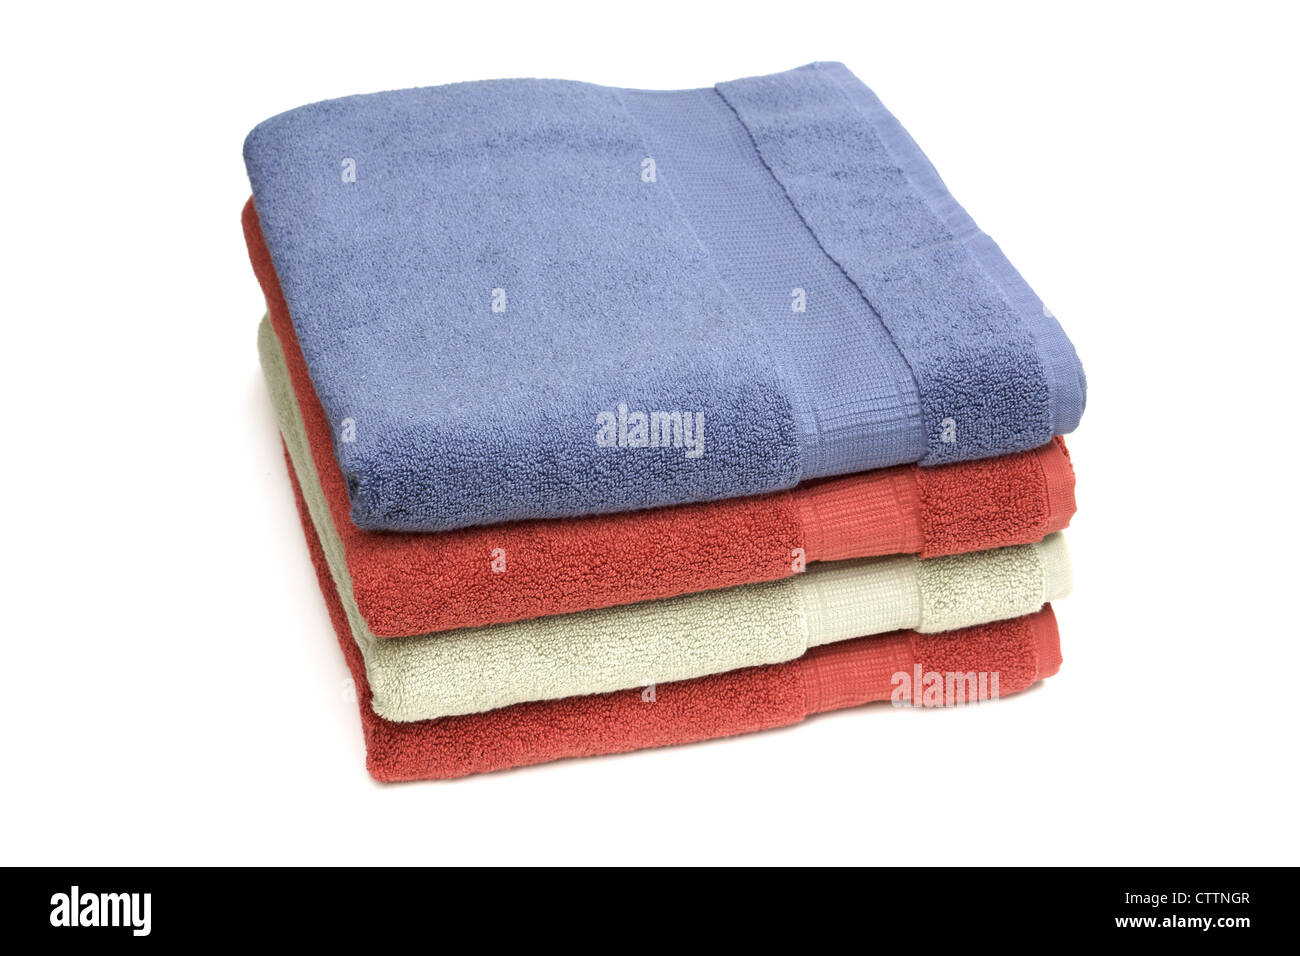 Towels - Stock Image